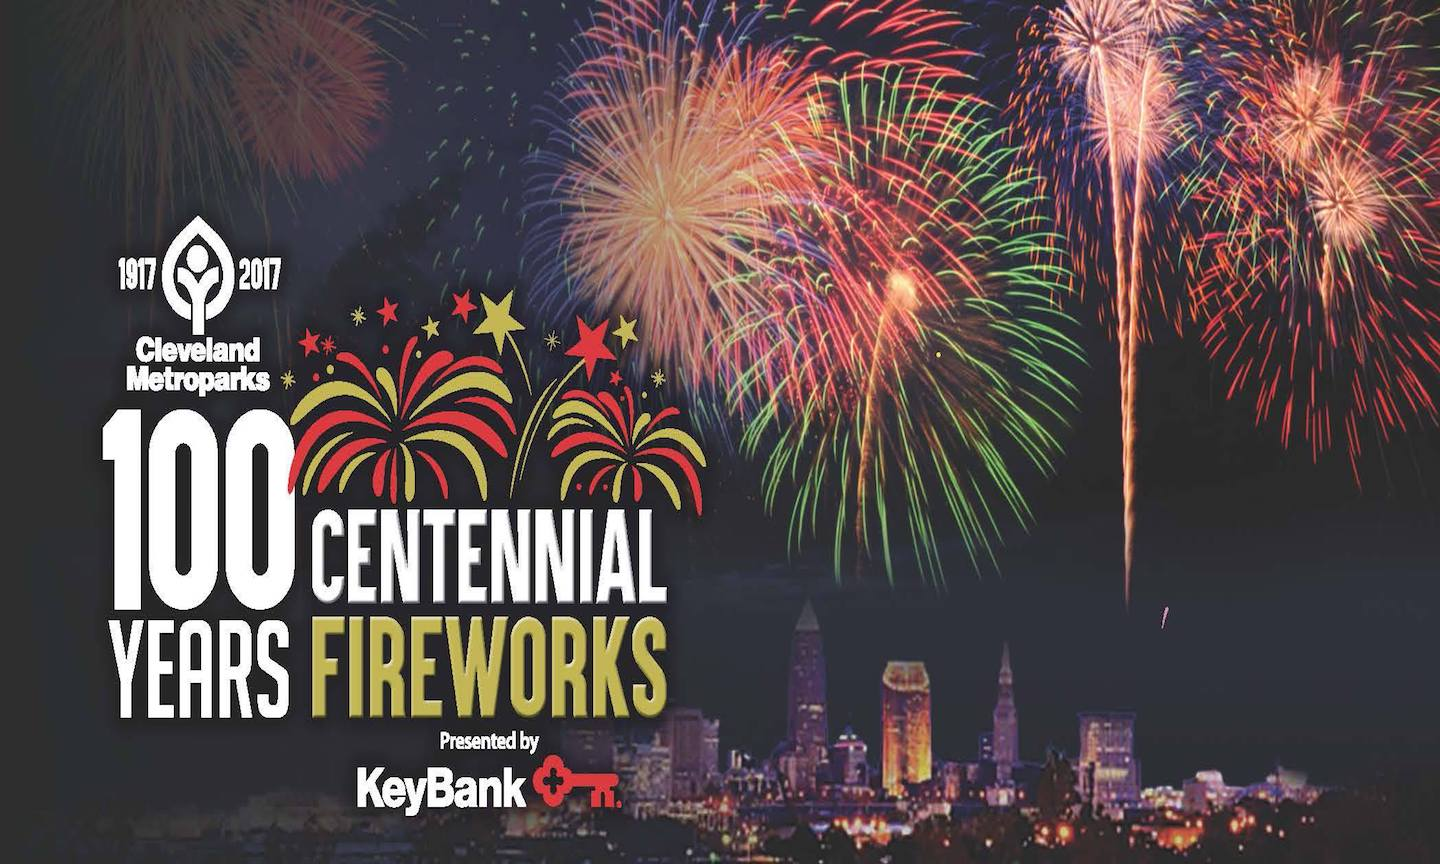 Centennial Fireworks presented by KeyBank